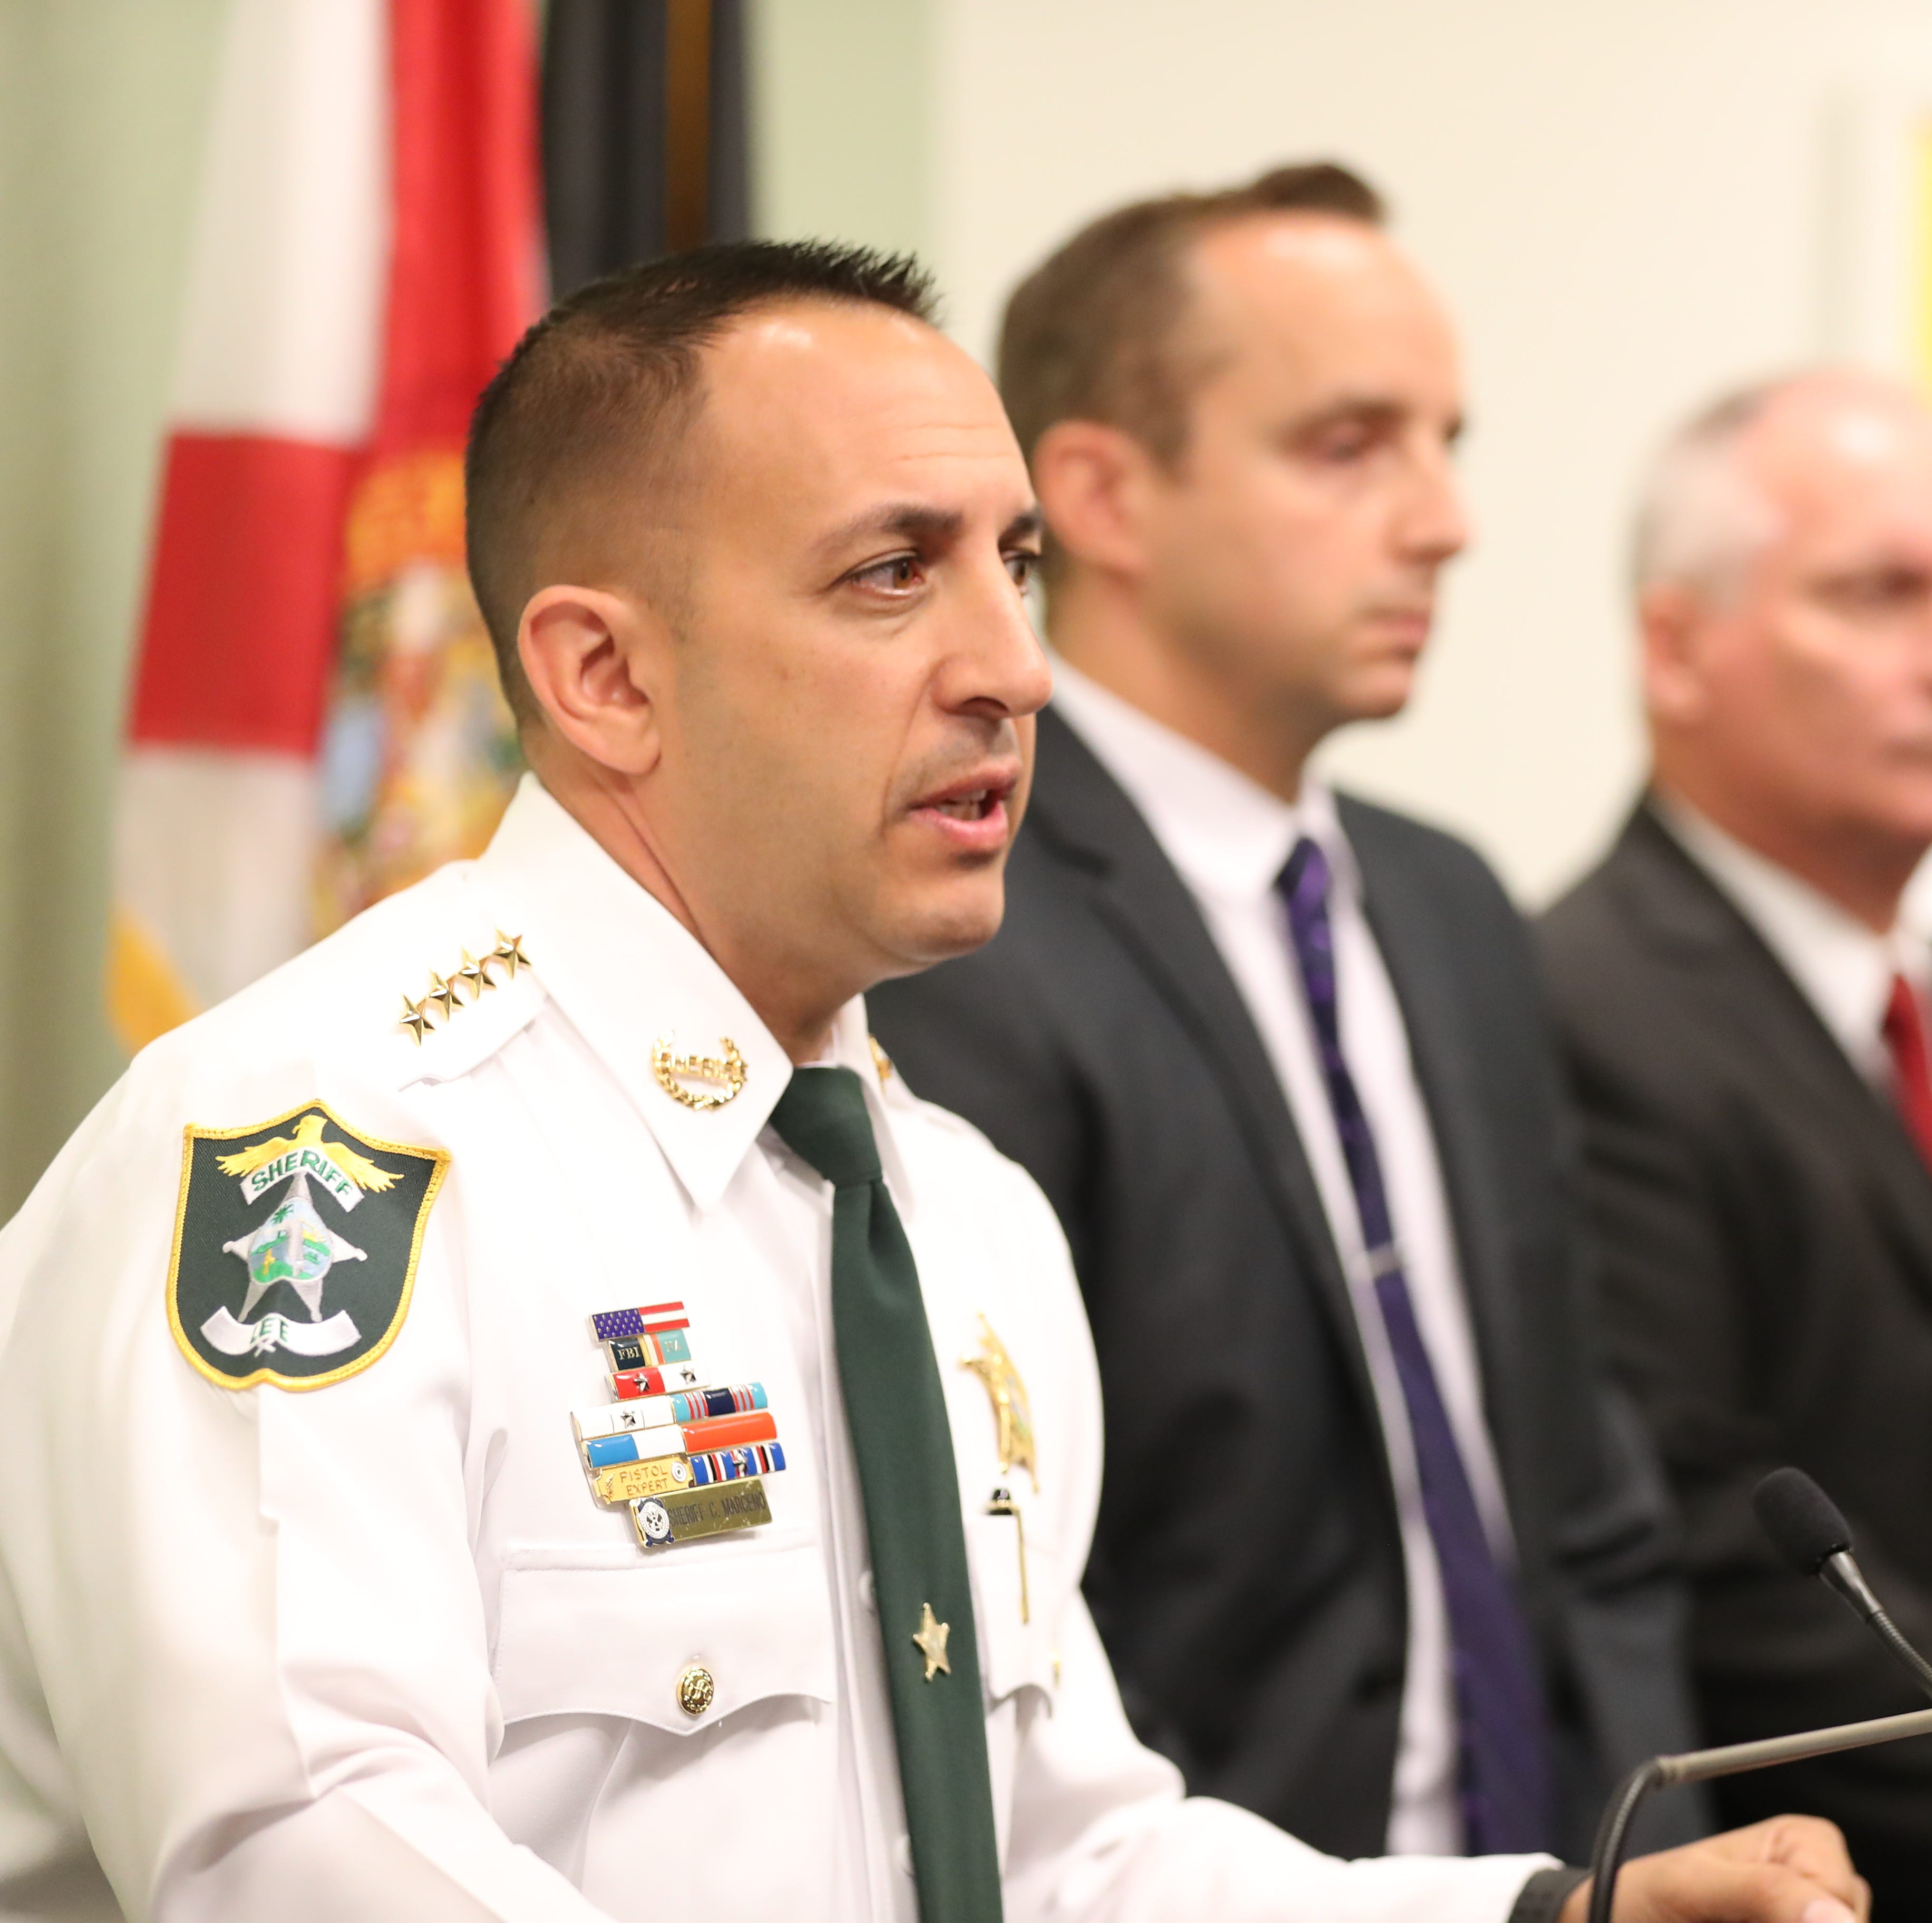 FDLE won't pursue criminal investigation against Lee Sheriff Marceno for alleged 'threats' in paternity suit